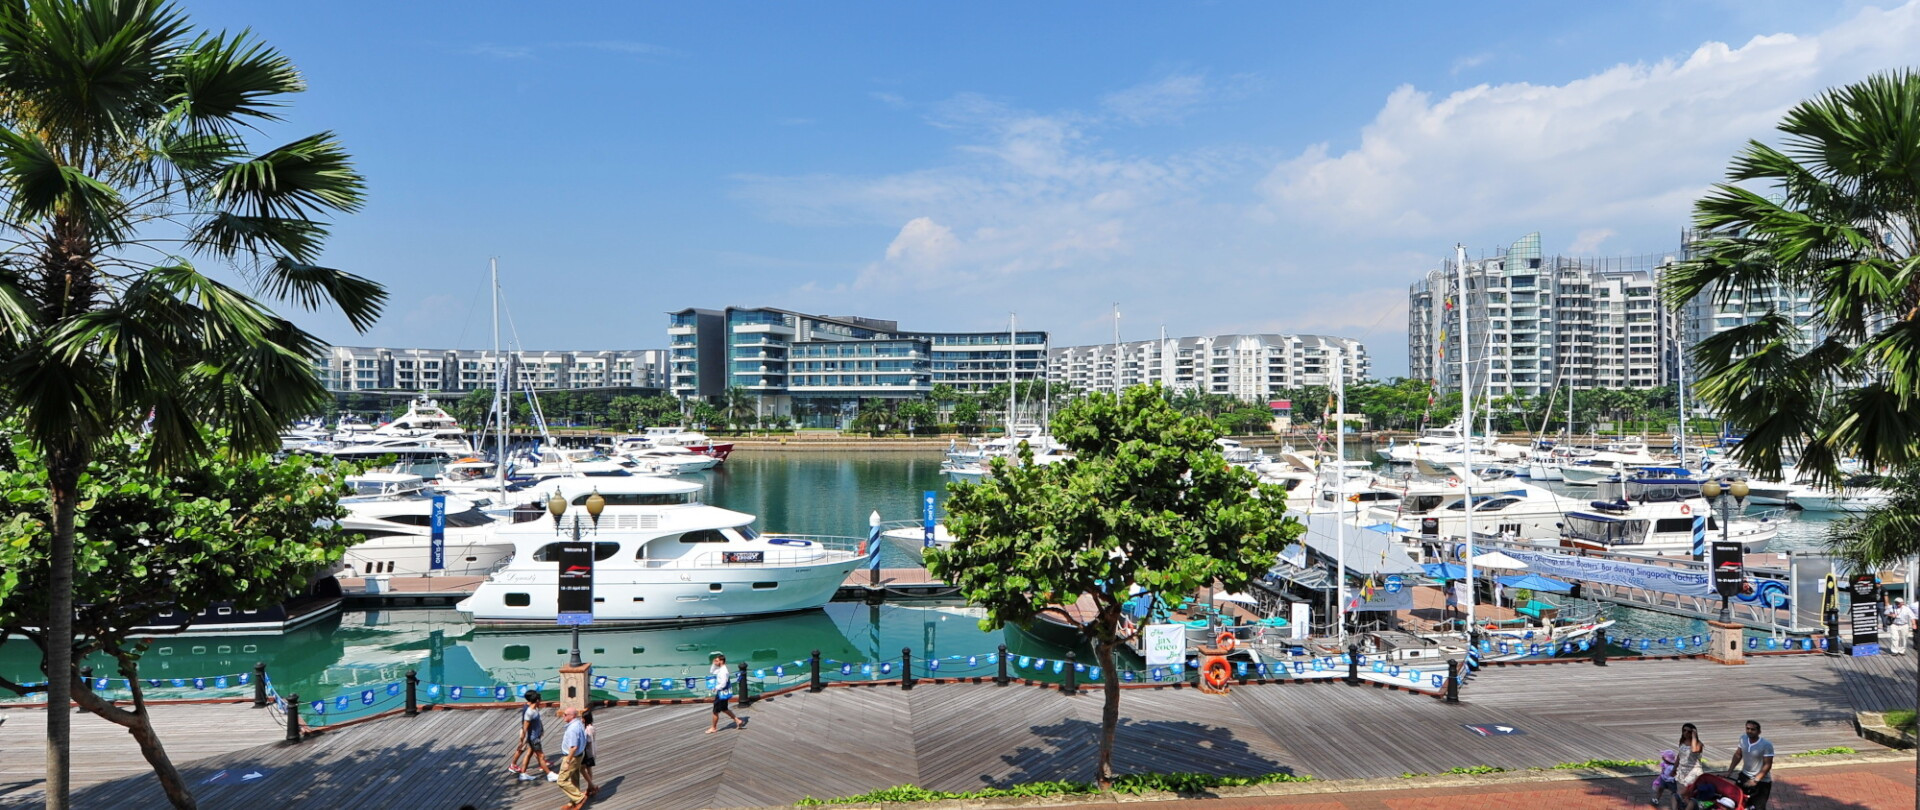 The Singapore Yacht Show, 11th - 14th April 2019 photo 1